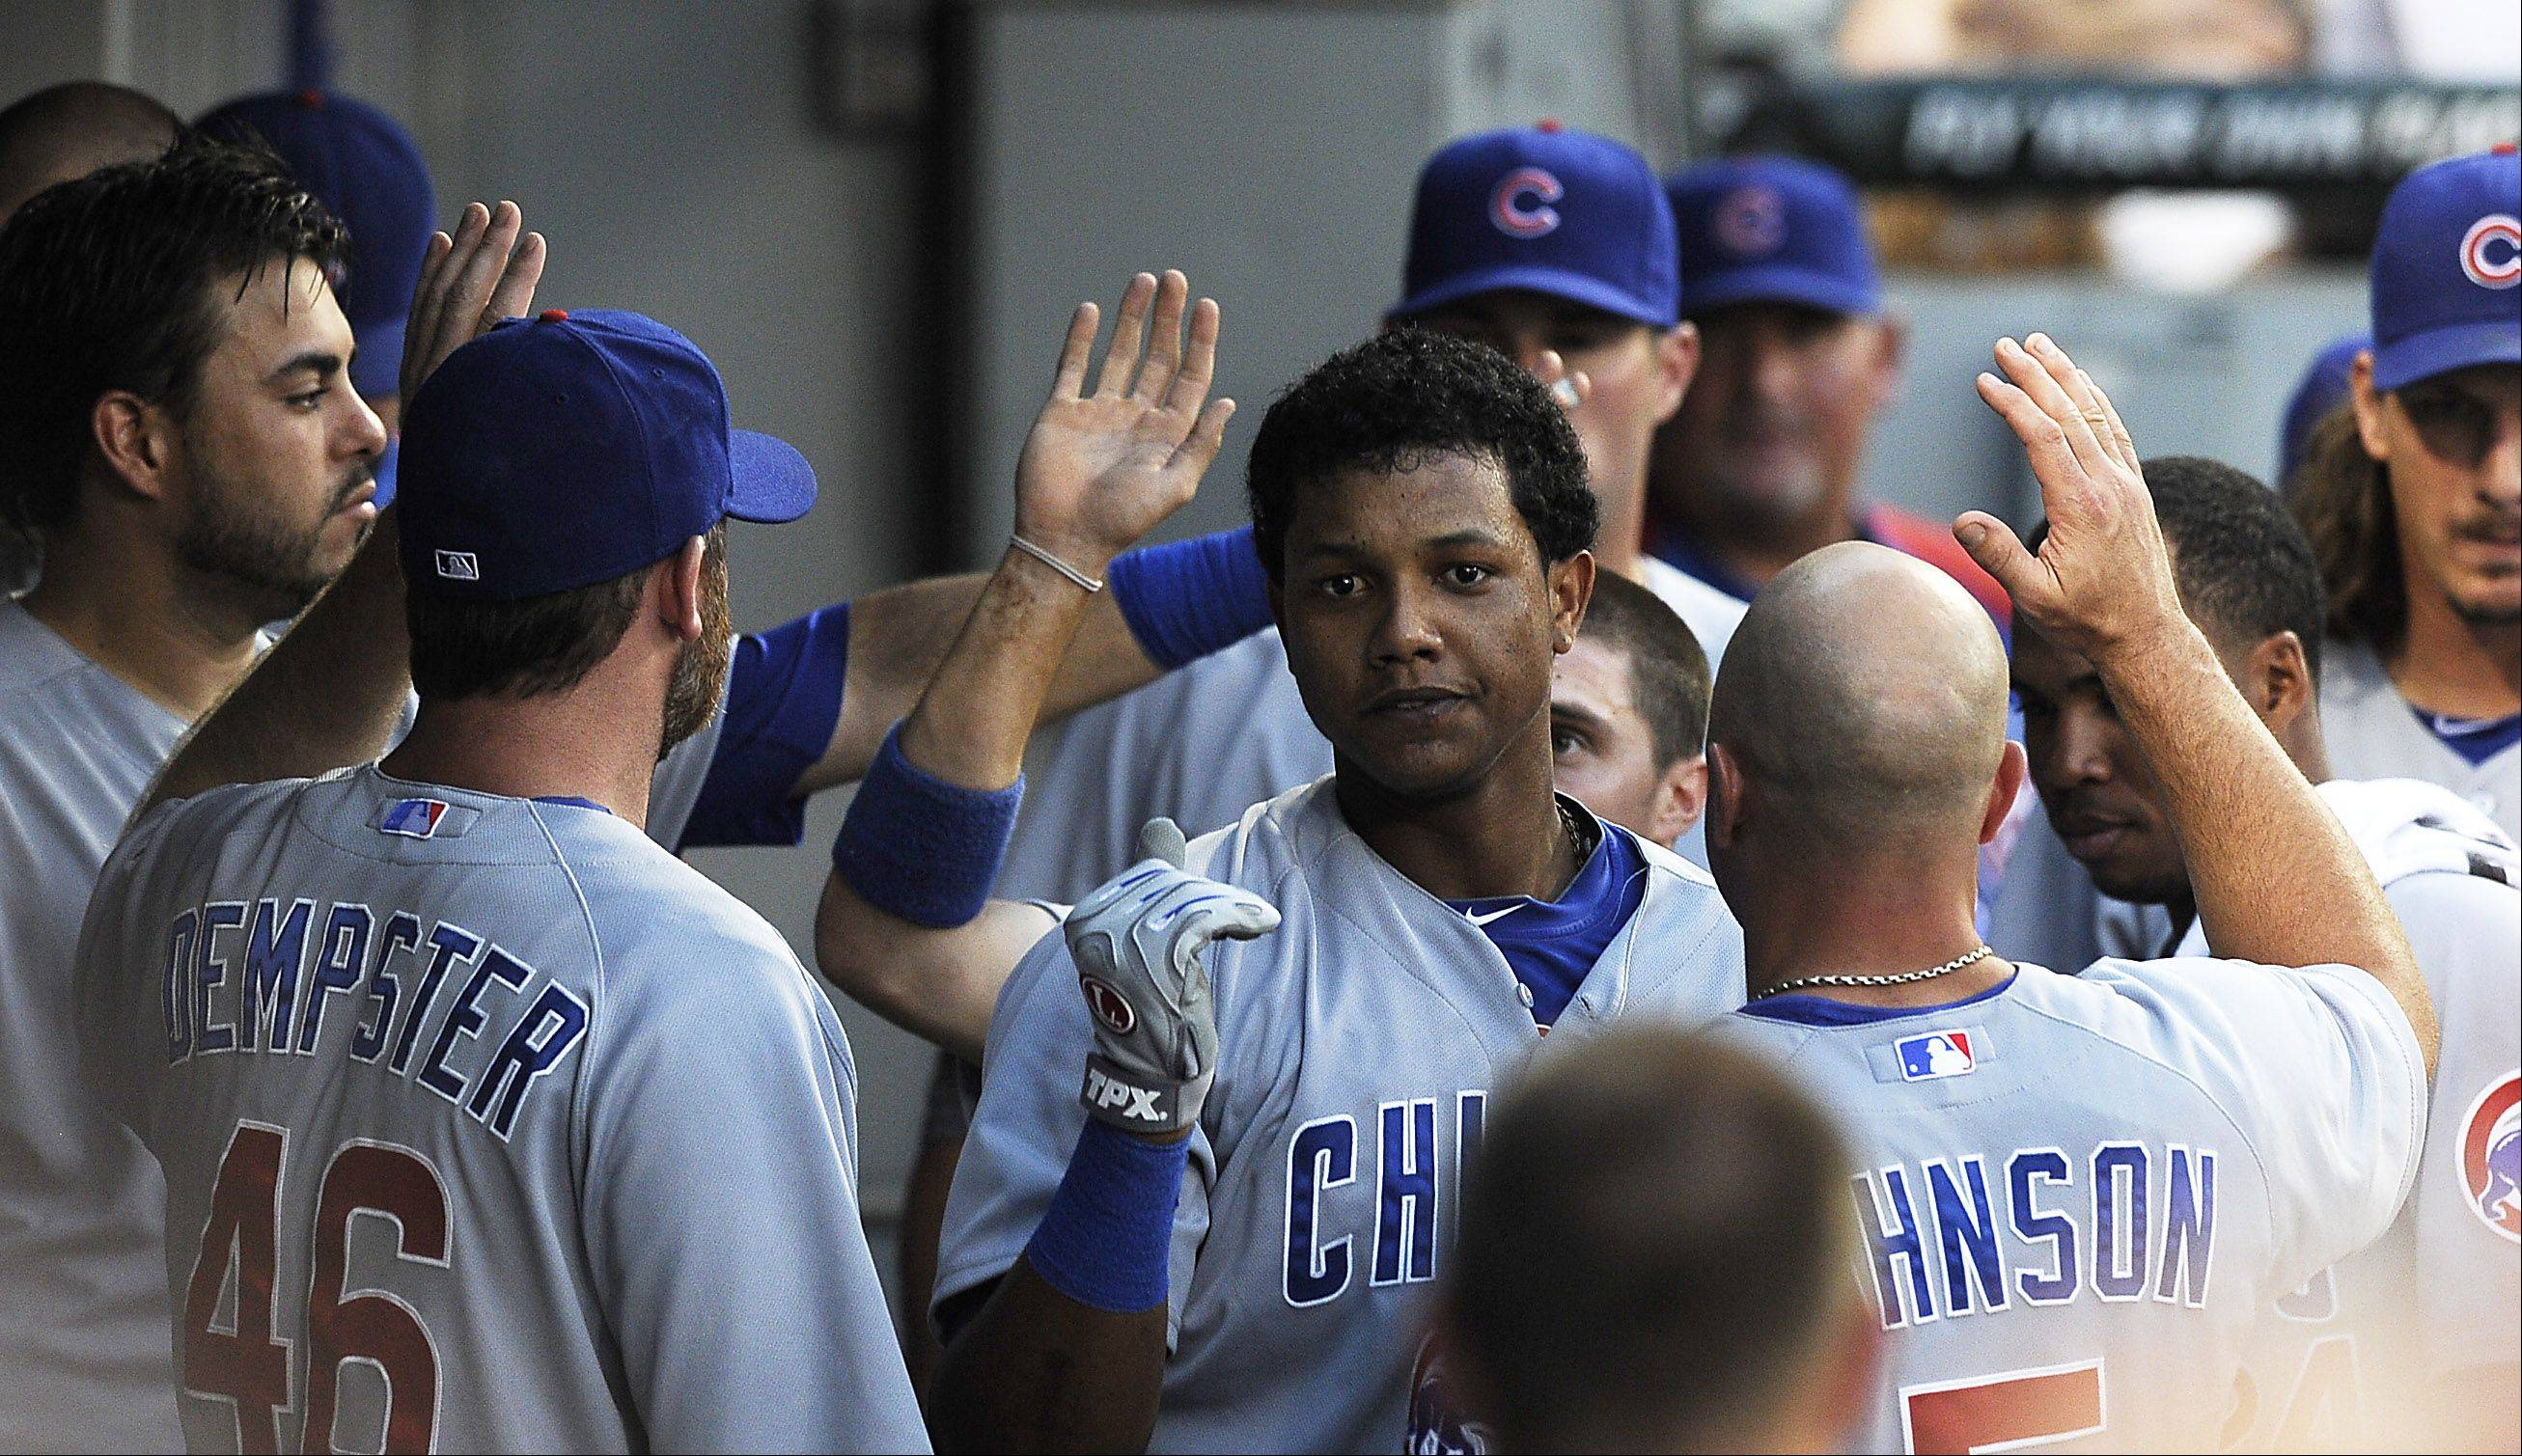 Chicago Cubs' Starlin Castro clubs his fifth inning home run.